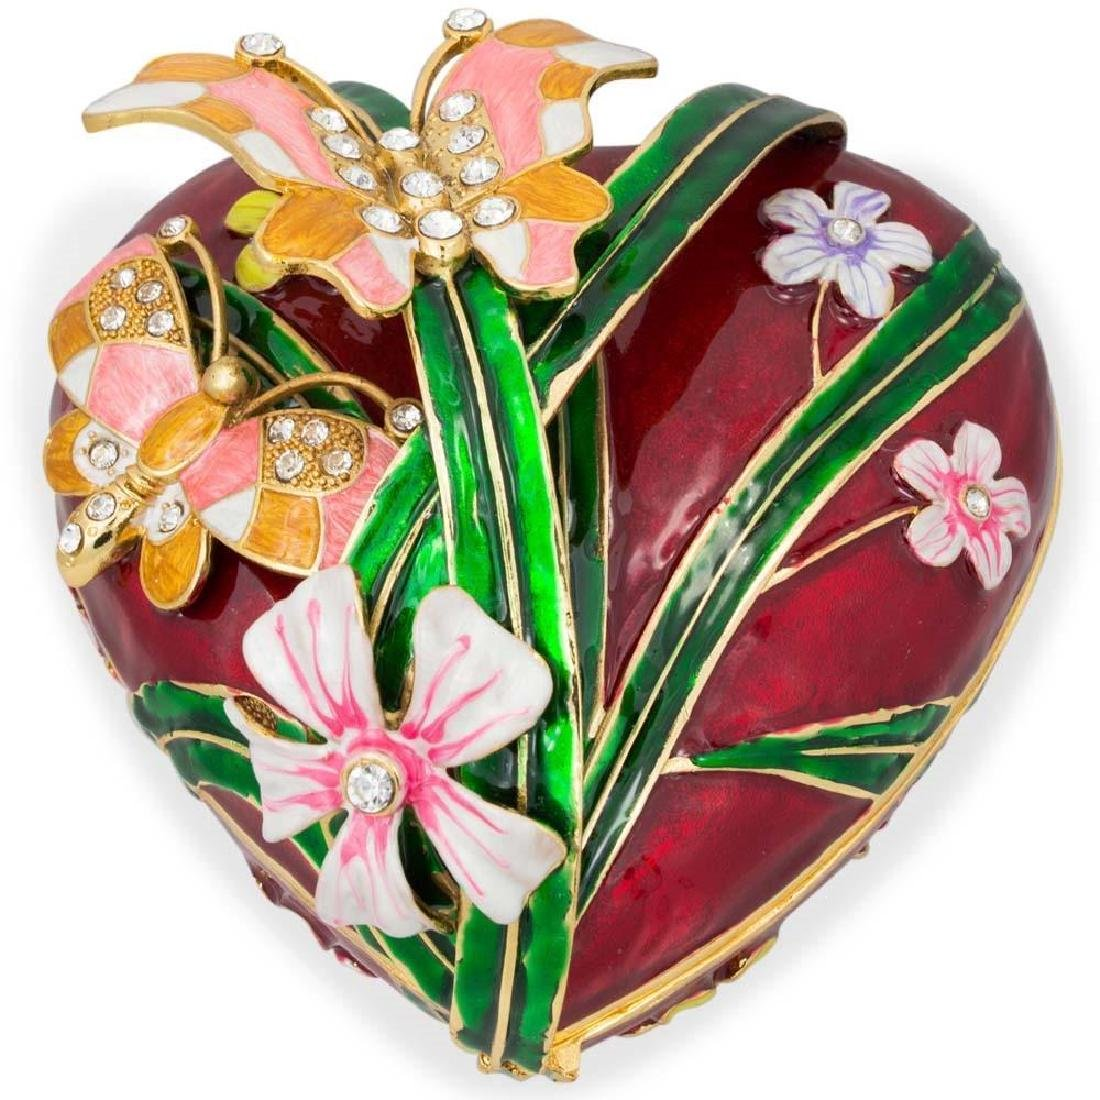 "Faberge Inspired 6.5"" Valentine's Love Heart with - 4"